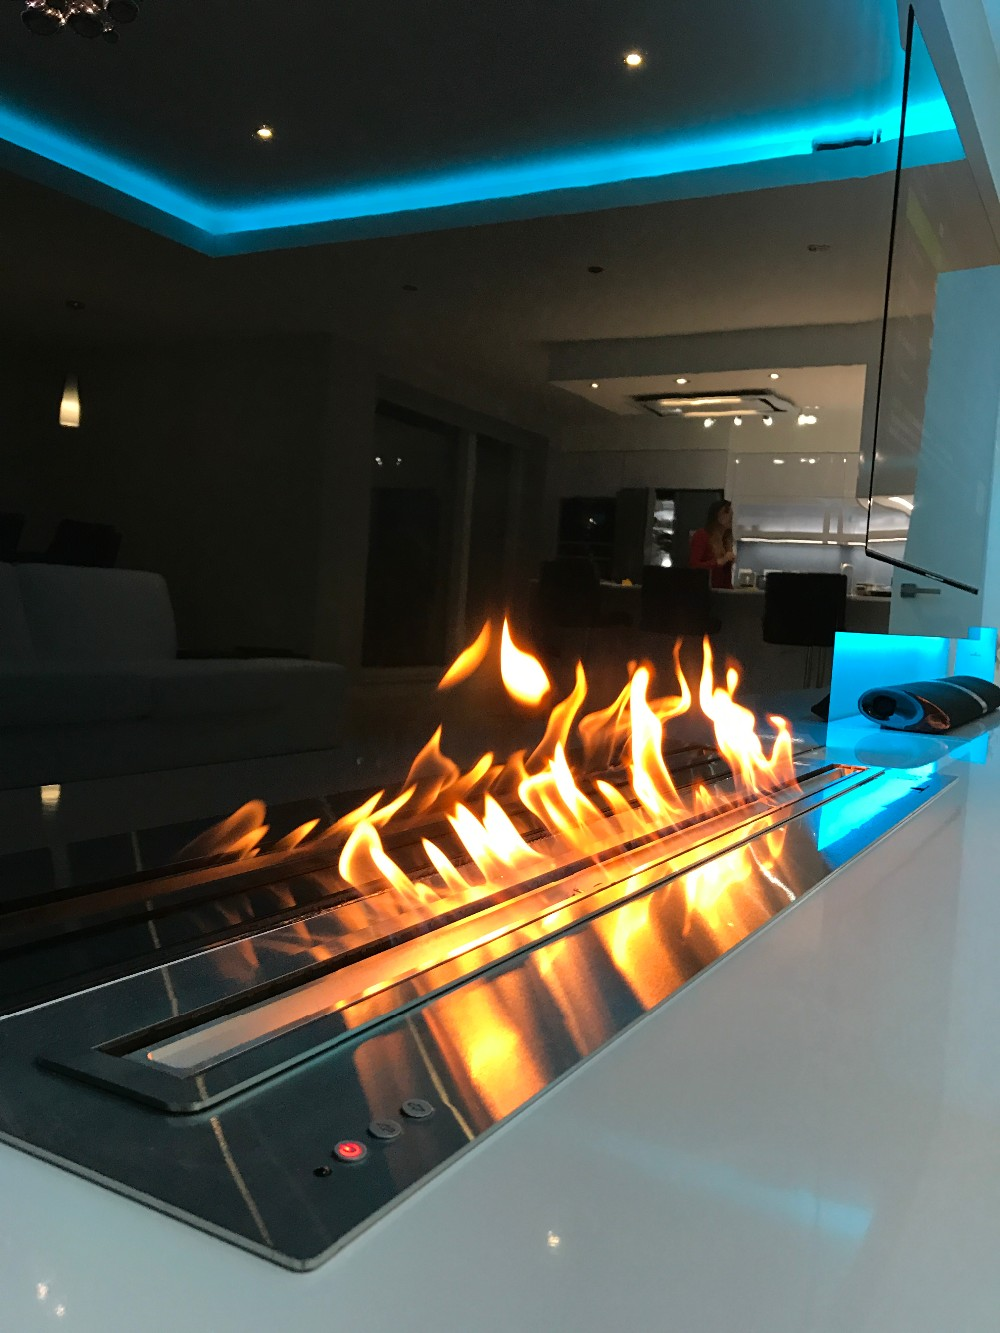 Hot Sale 48 Inches Ethanol Chimney Wifi Remote Control Ethanol Fire Pit Insert